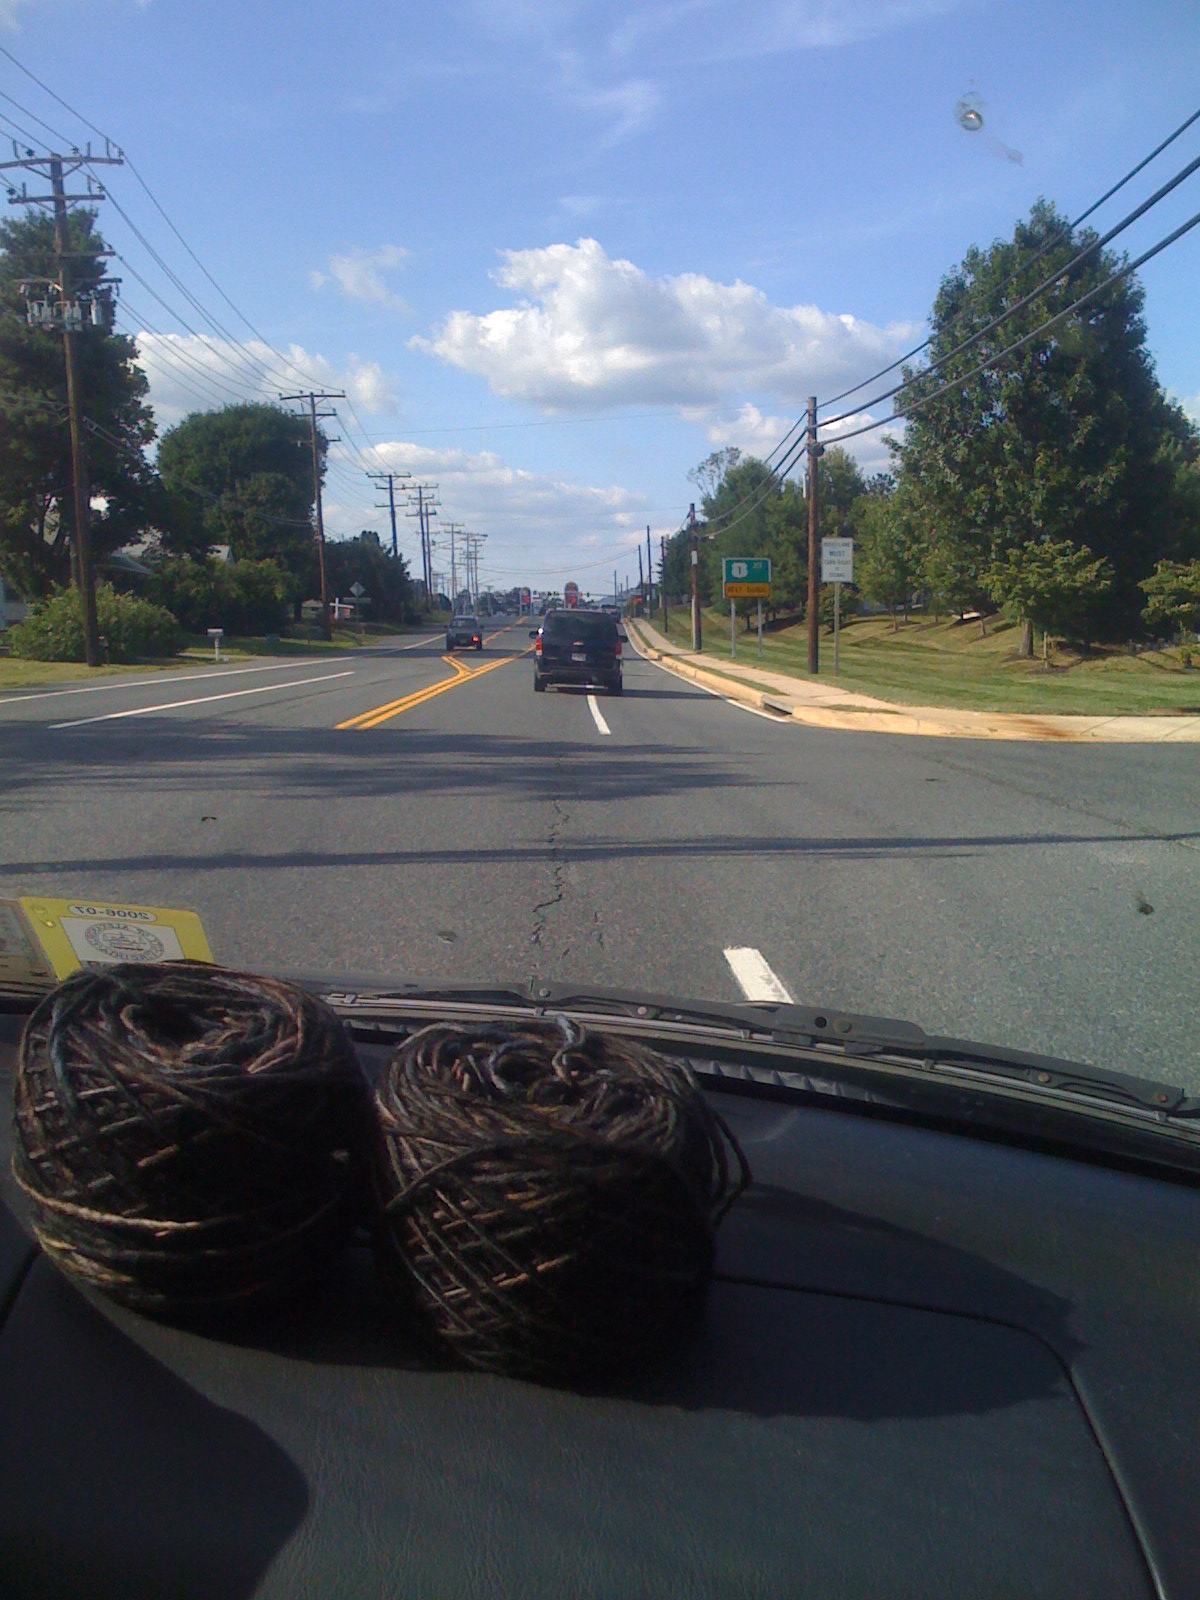 The new Manos yarn takes a ride up Route One